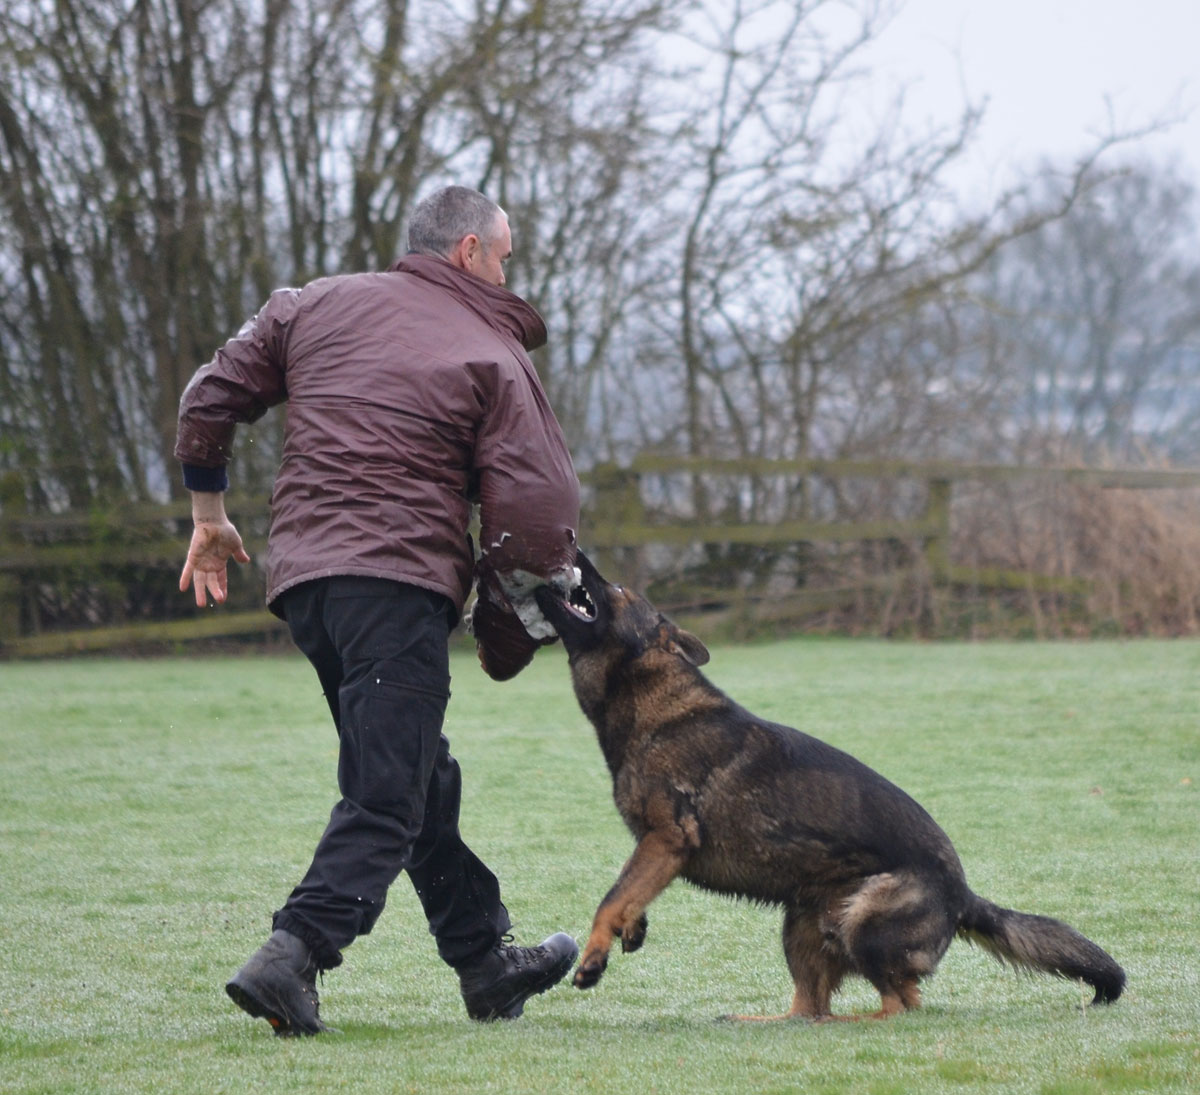 Patto is police force's top dog